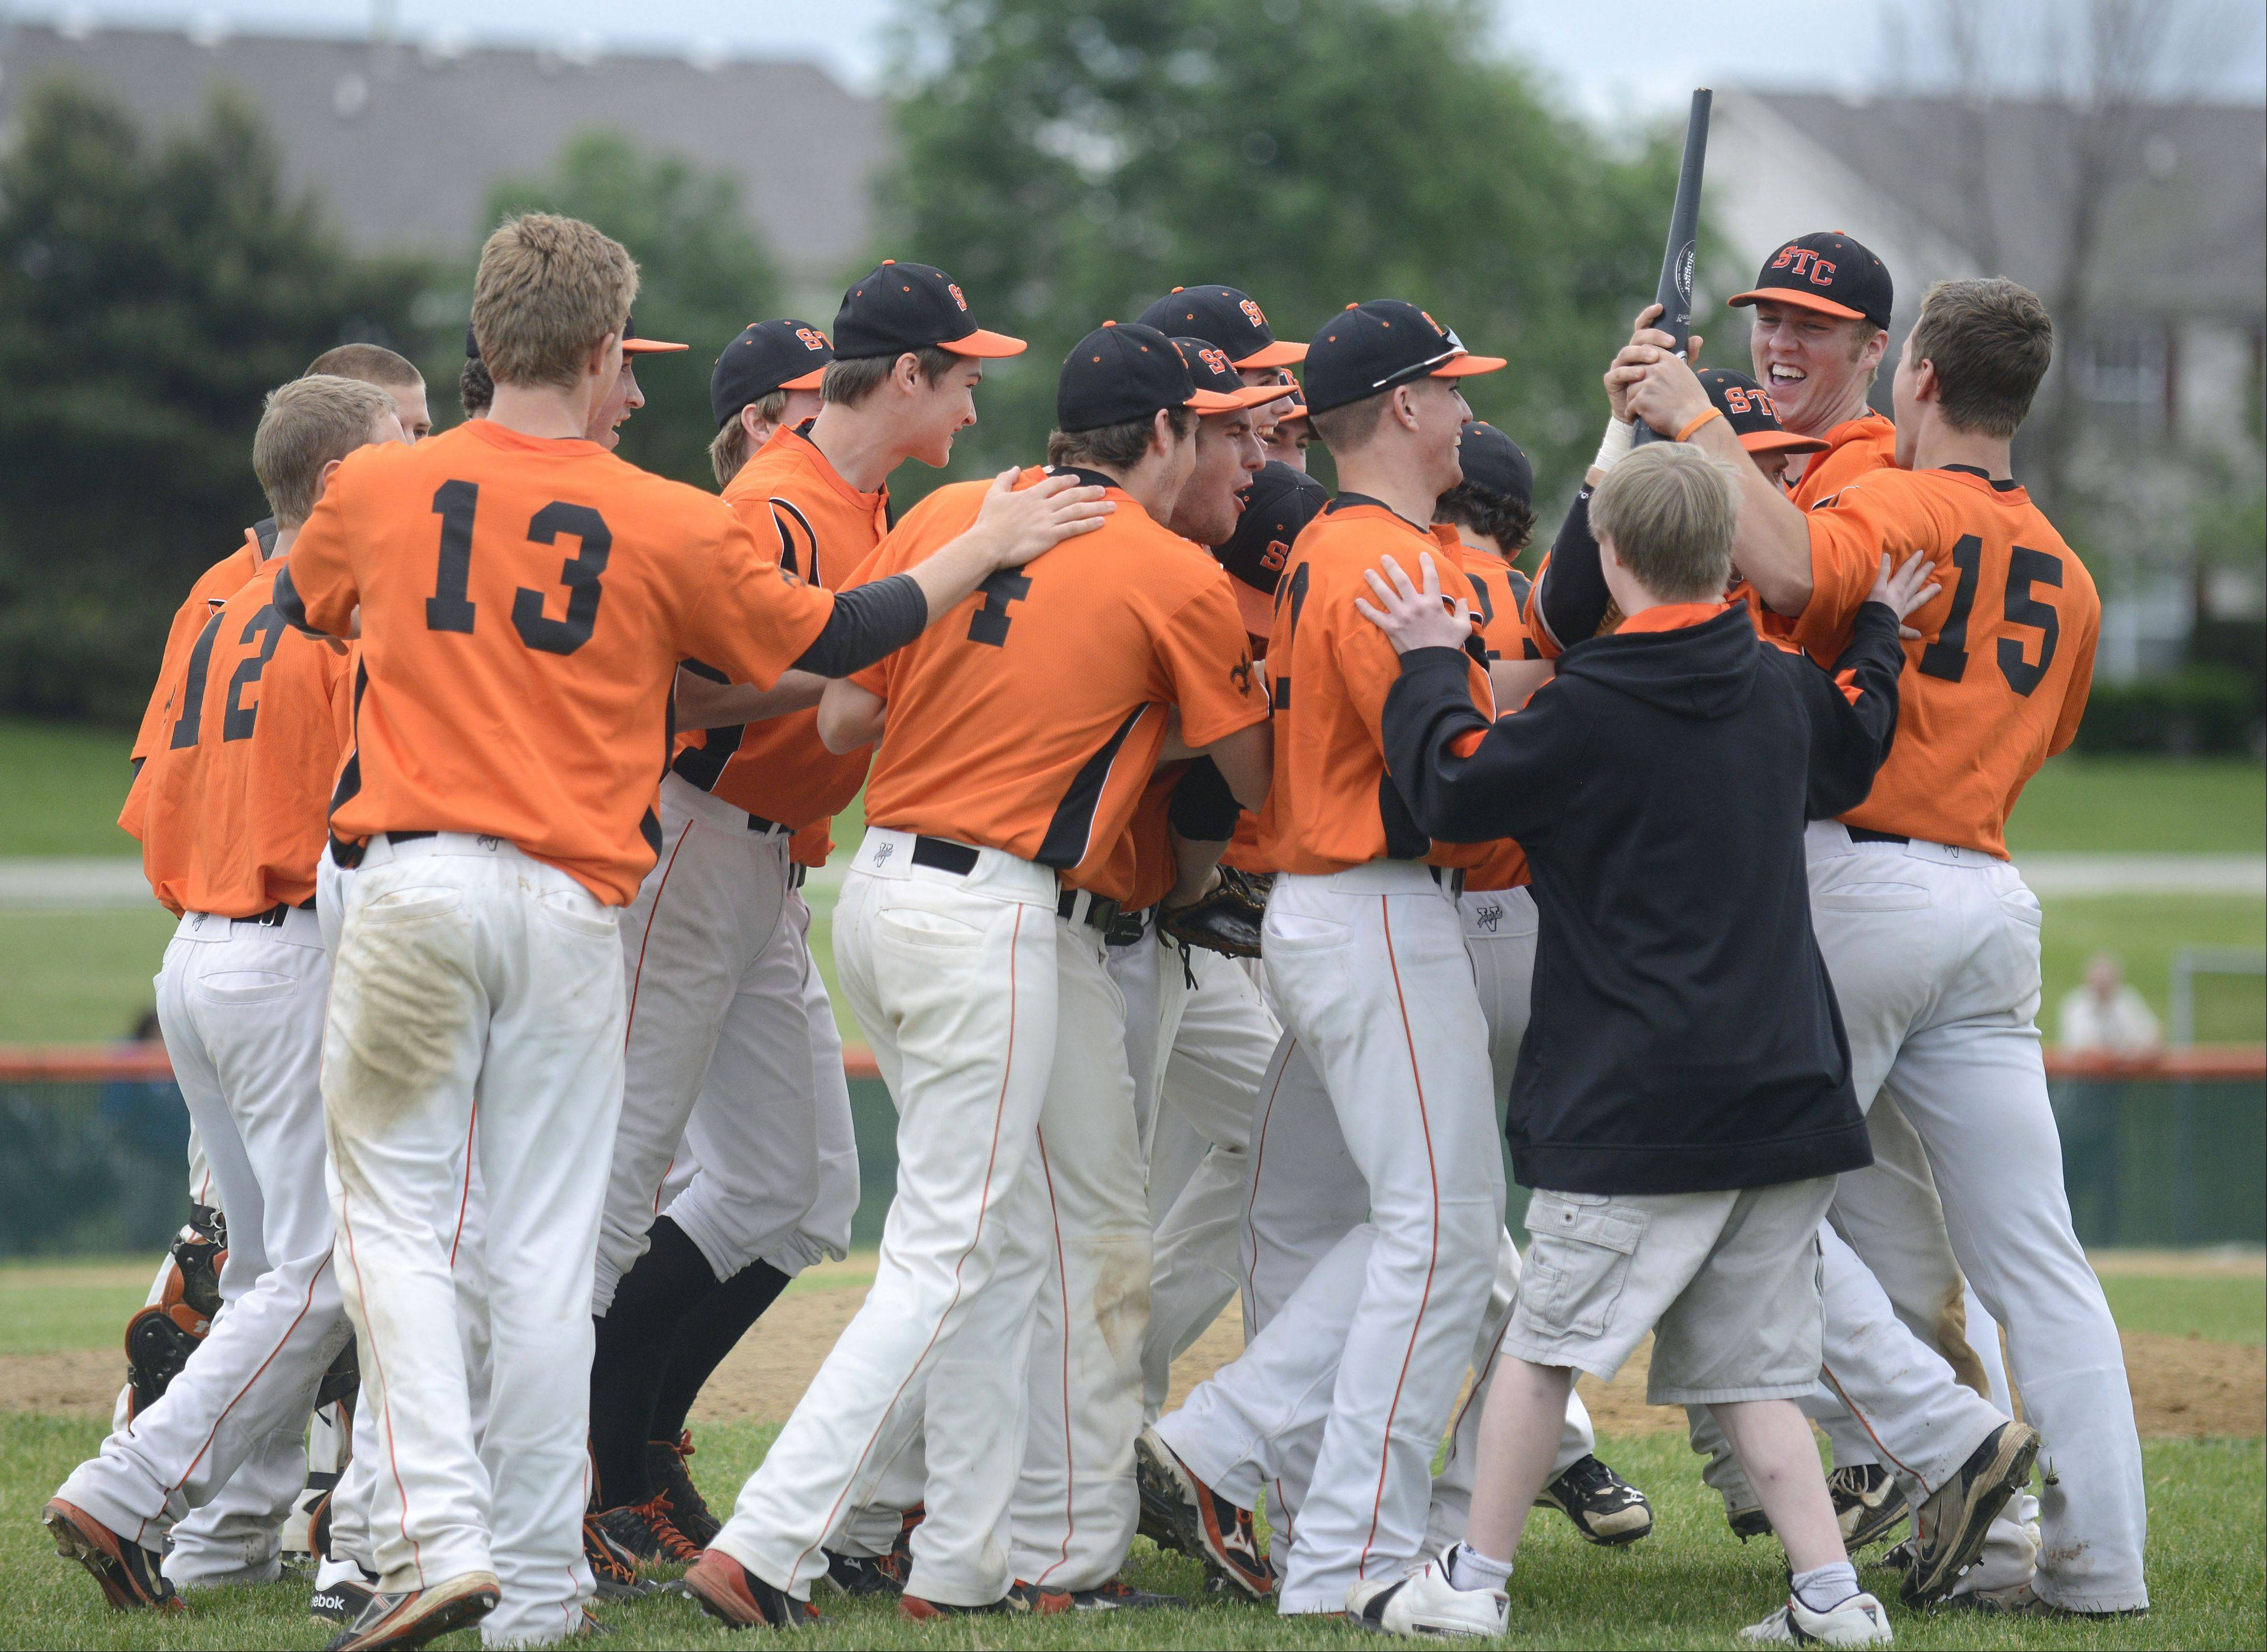 St. Charles East celebrates their Class 4A sectional championship over Wheaton North on Saturday, June 1.